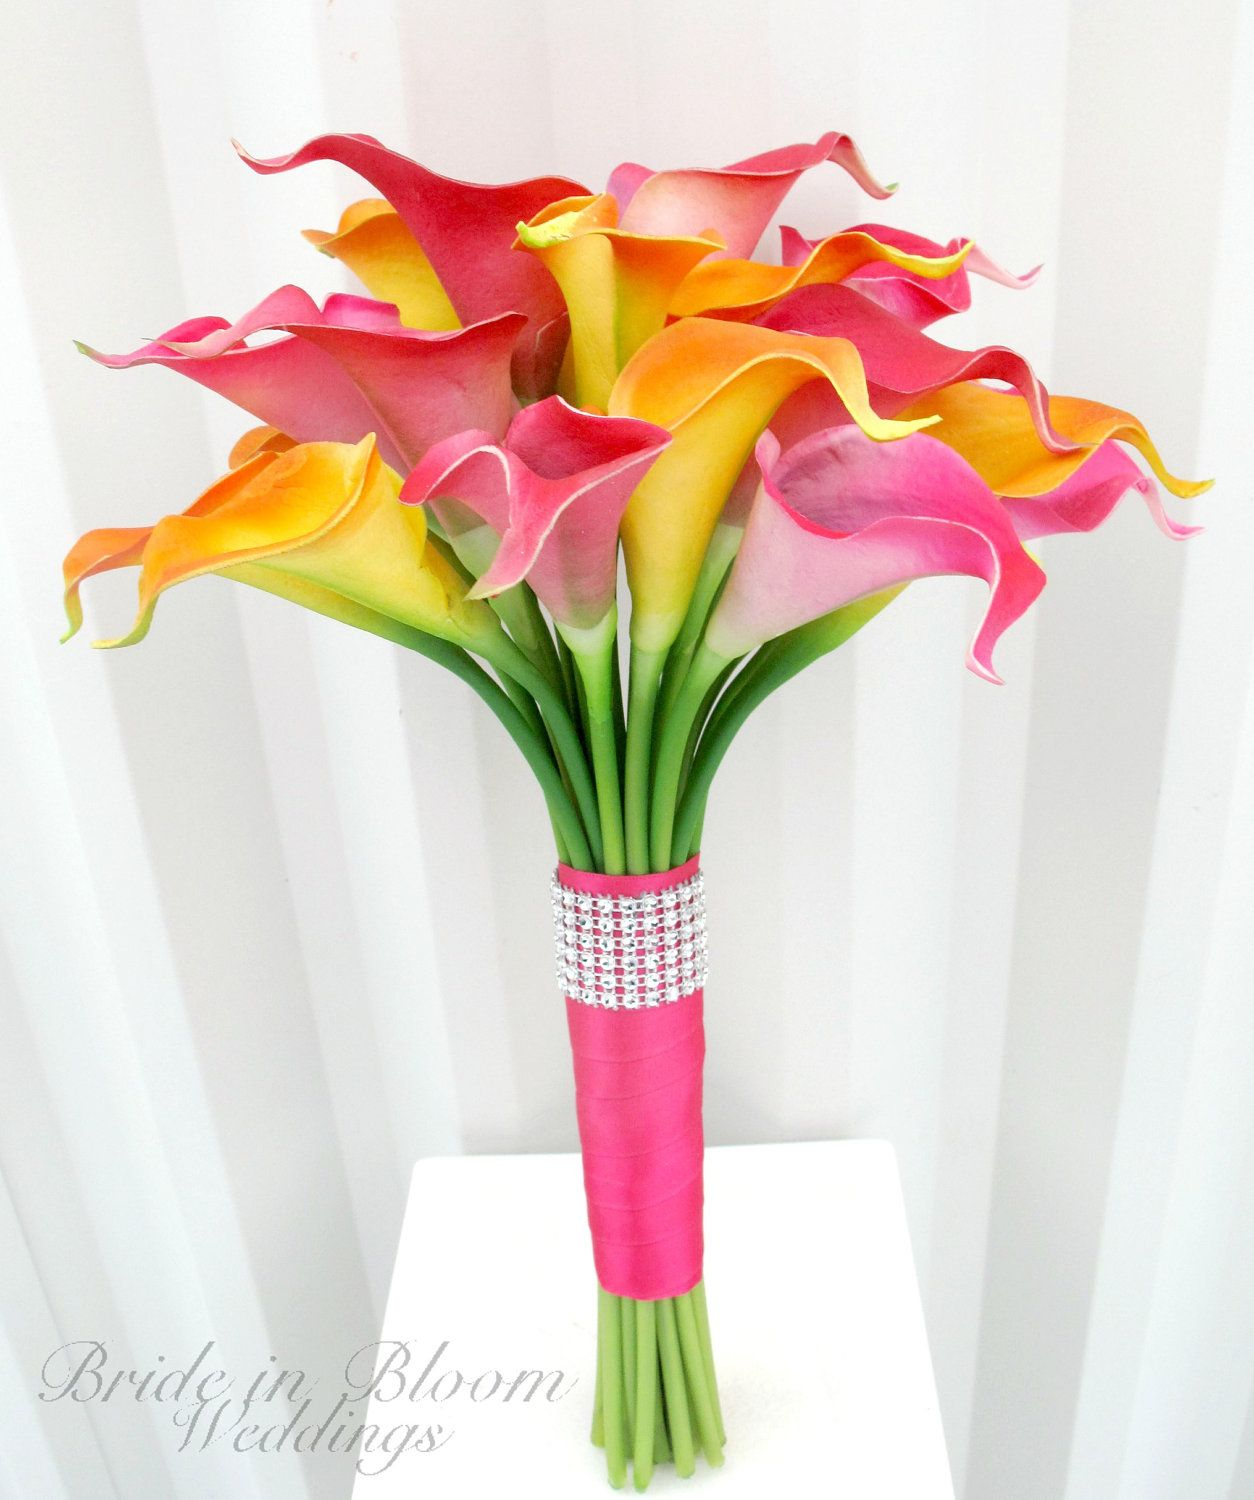 Bouquets wedding bride pinterest tropical wedding bouquets wedding bouquet real touch calla lily bridal bouquet hot pink orange bridal flowers via etsy just ribbon around the flowers izmirmasajfo